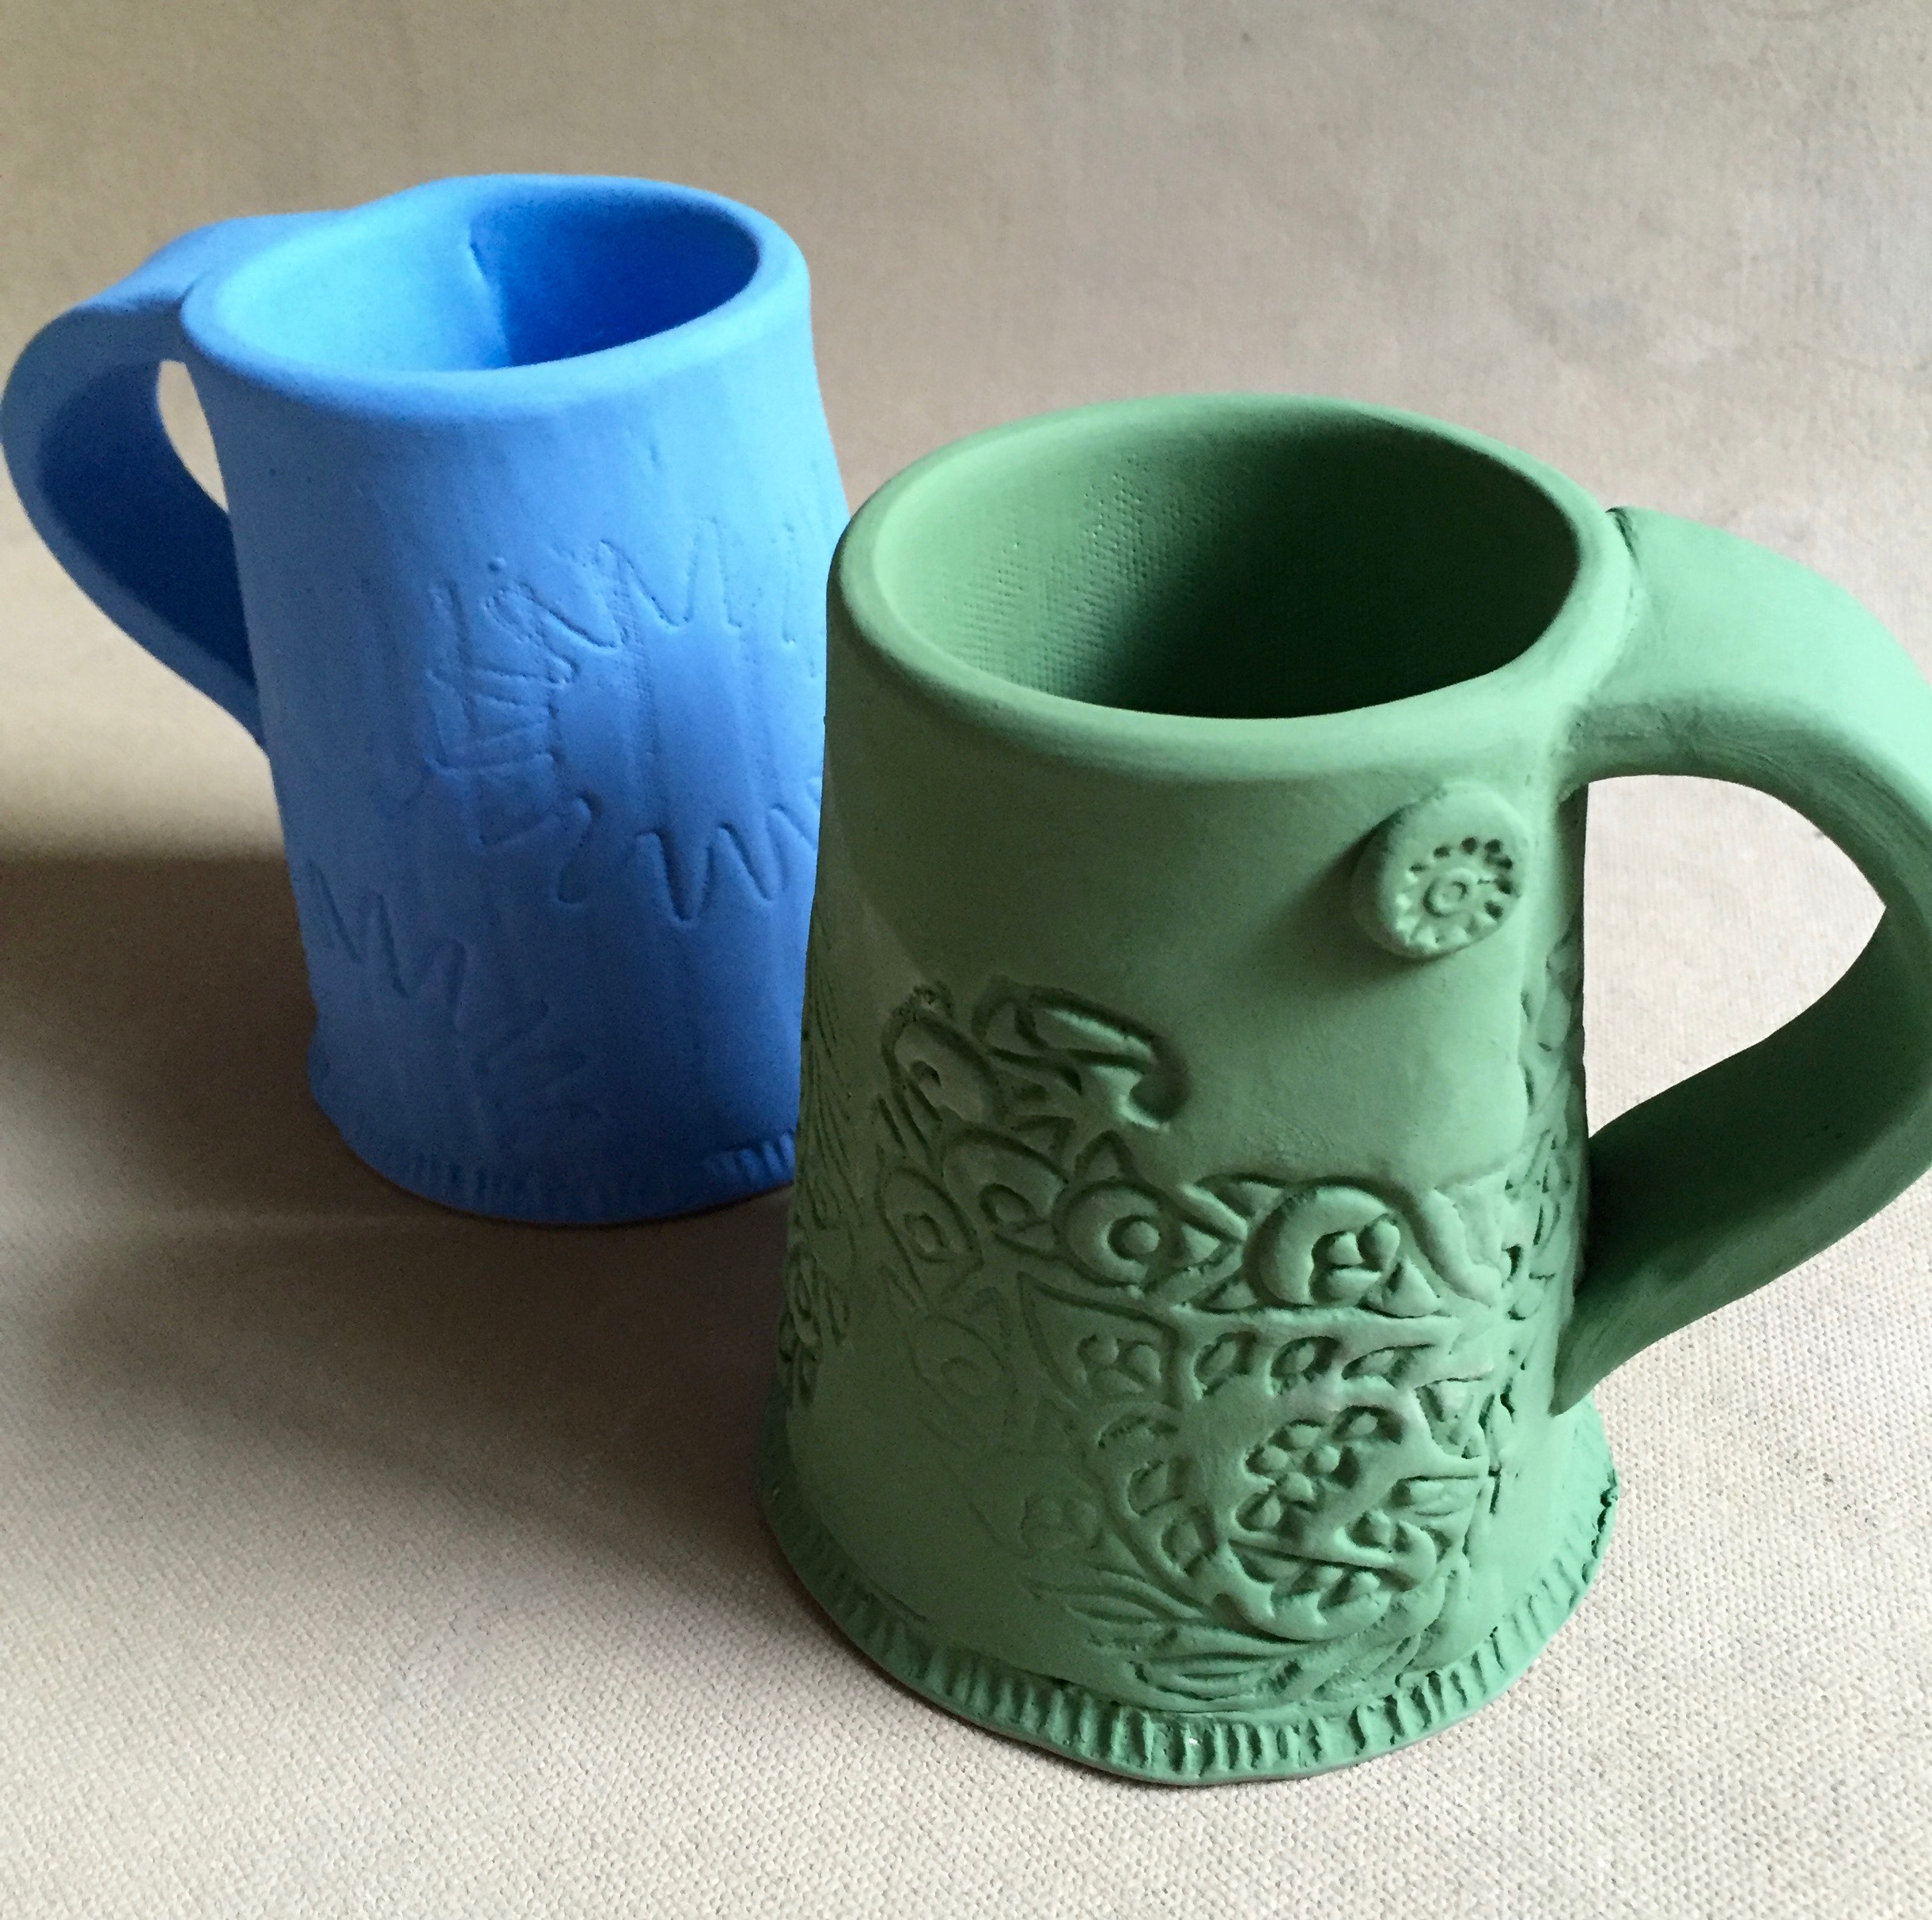 This is a new mug form for me. I chose to have a wider base and narrow top. This helps the functionality of the mug by keeping a hot beverage hot.